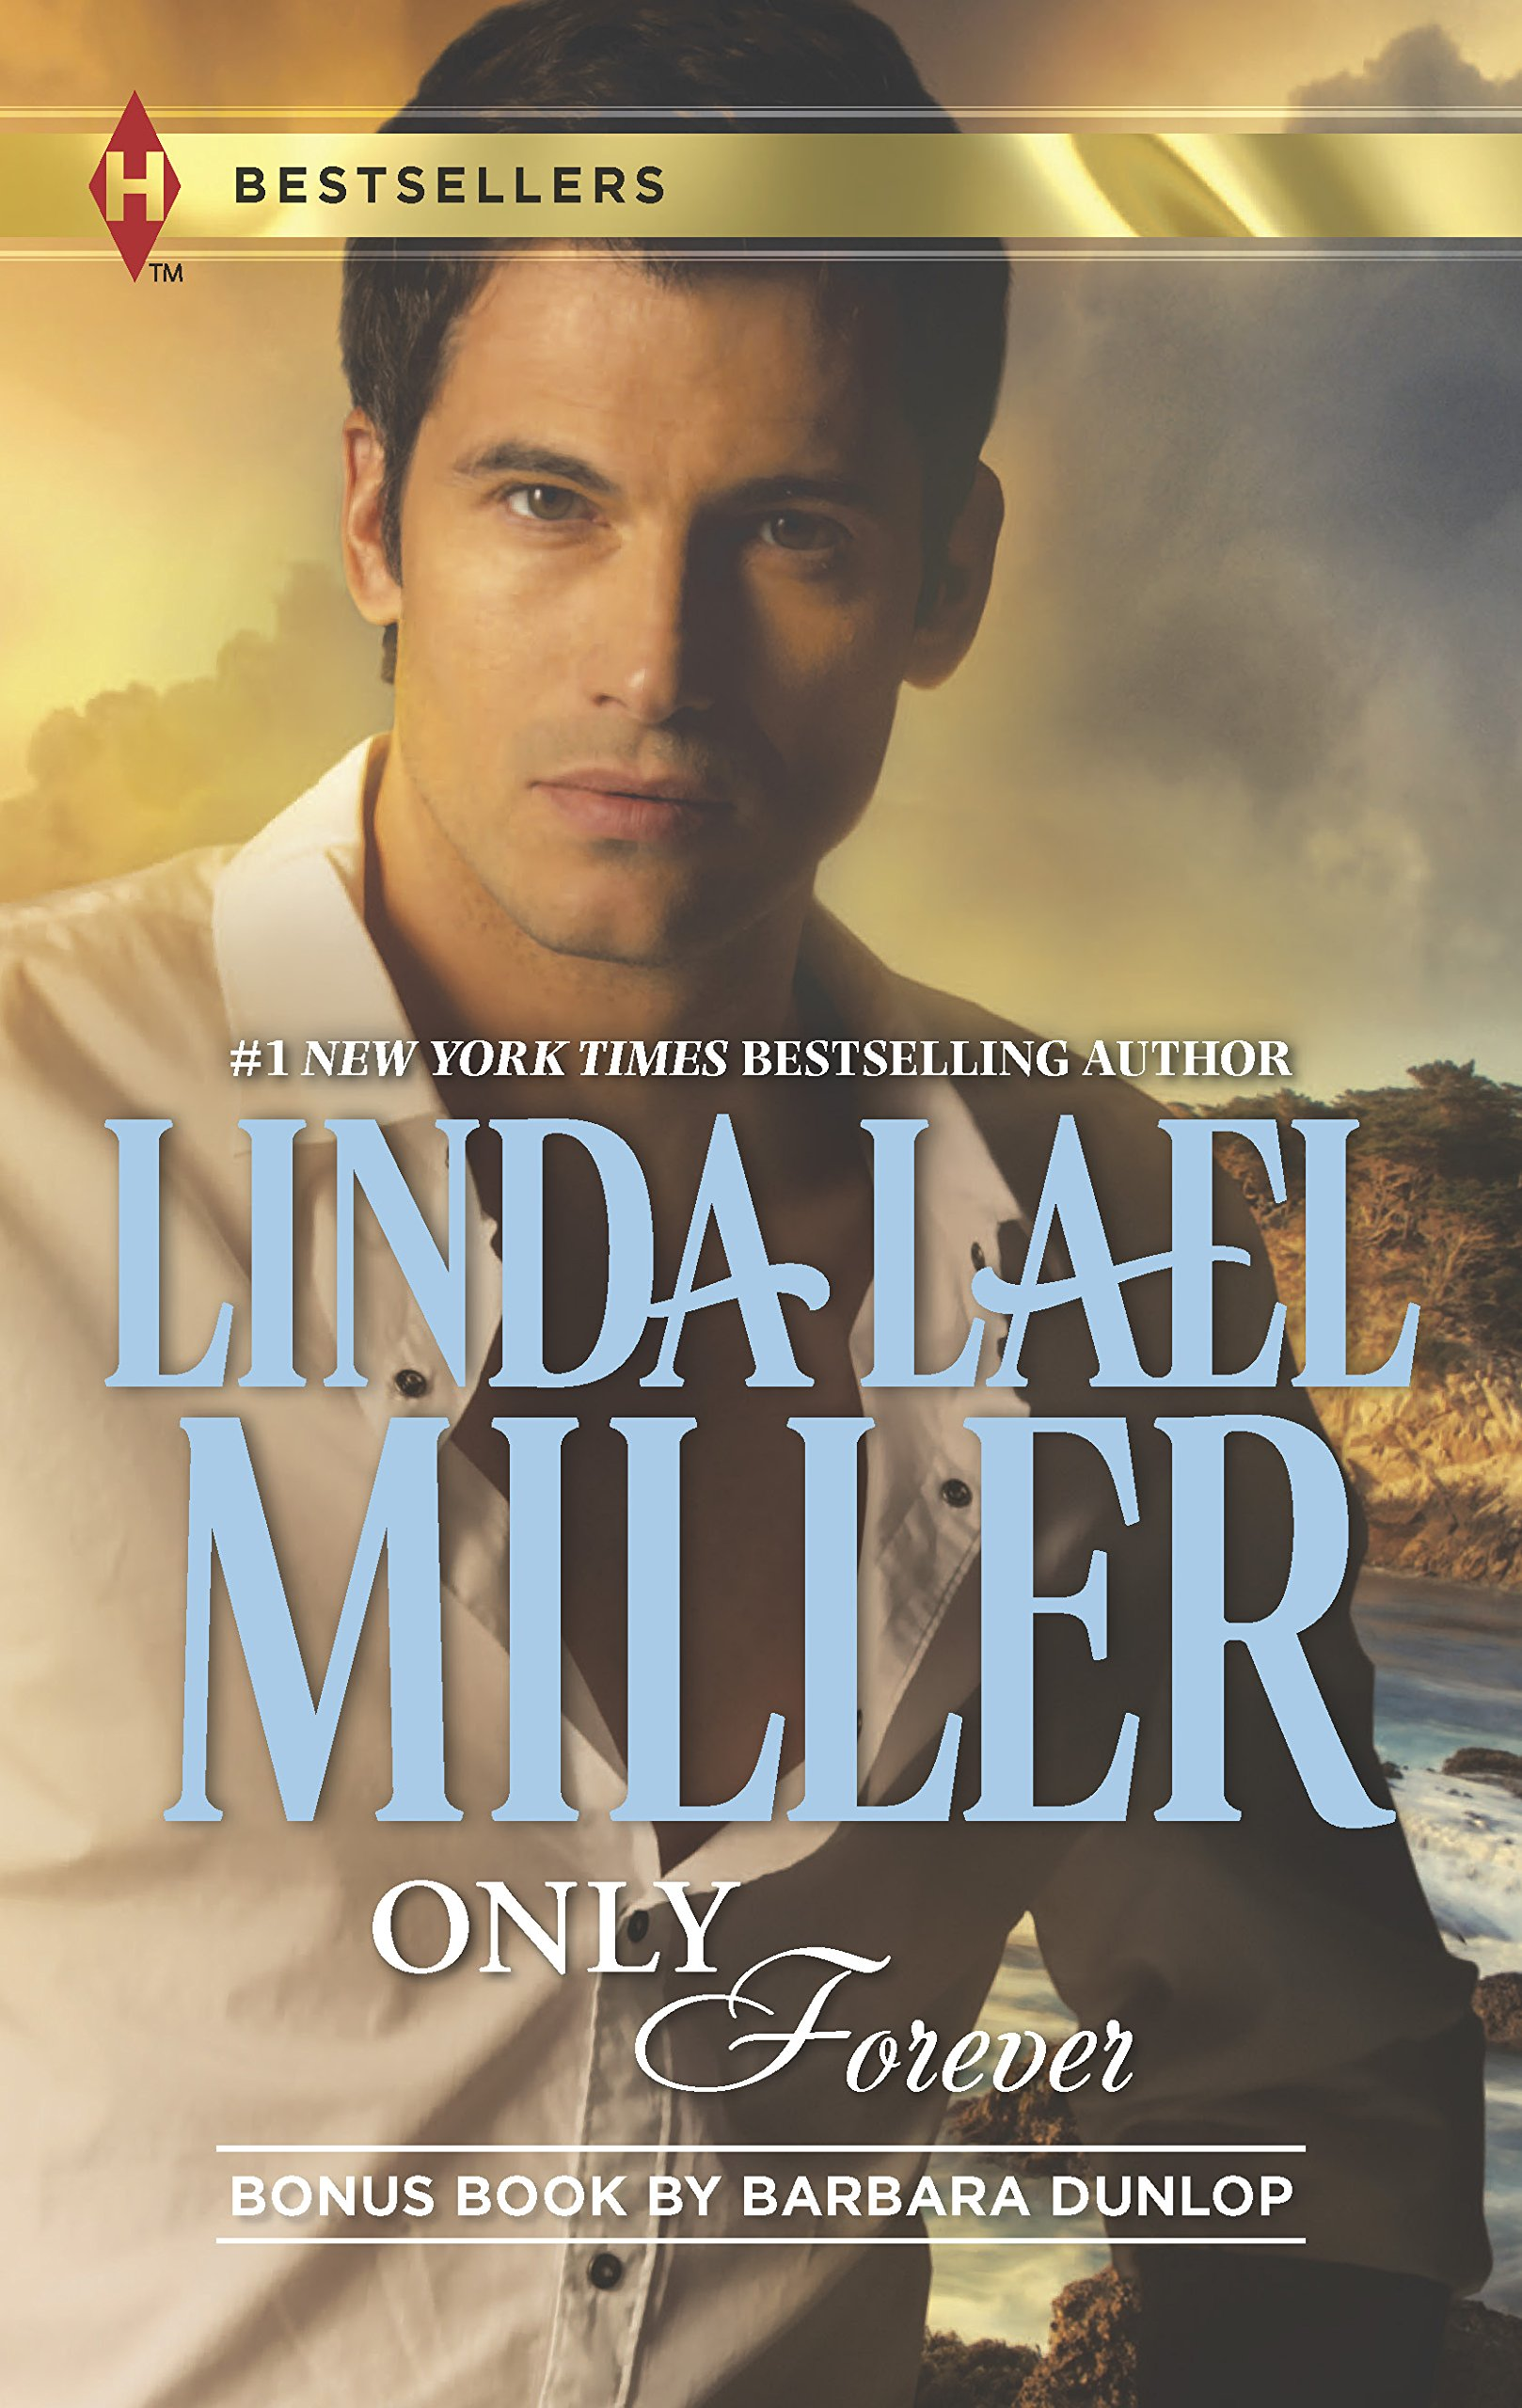 Only Forever: Thunderbolt over Texas (Harlequin Bestsellers)